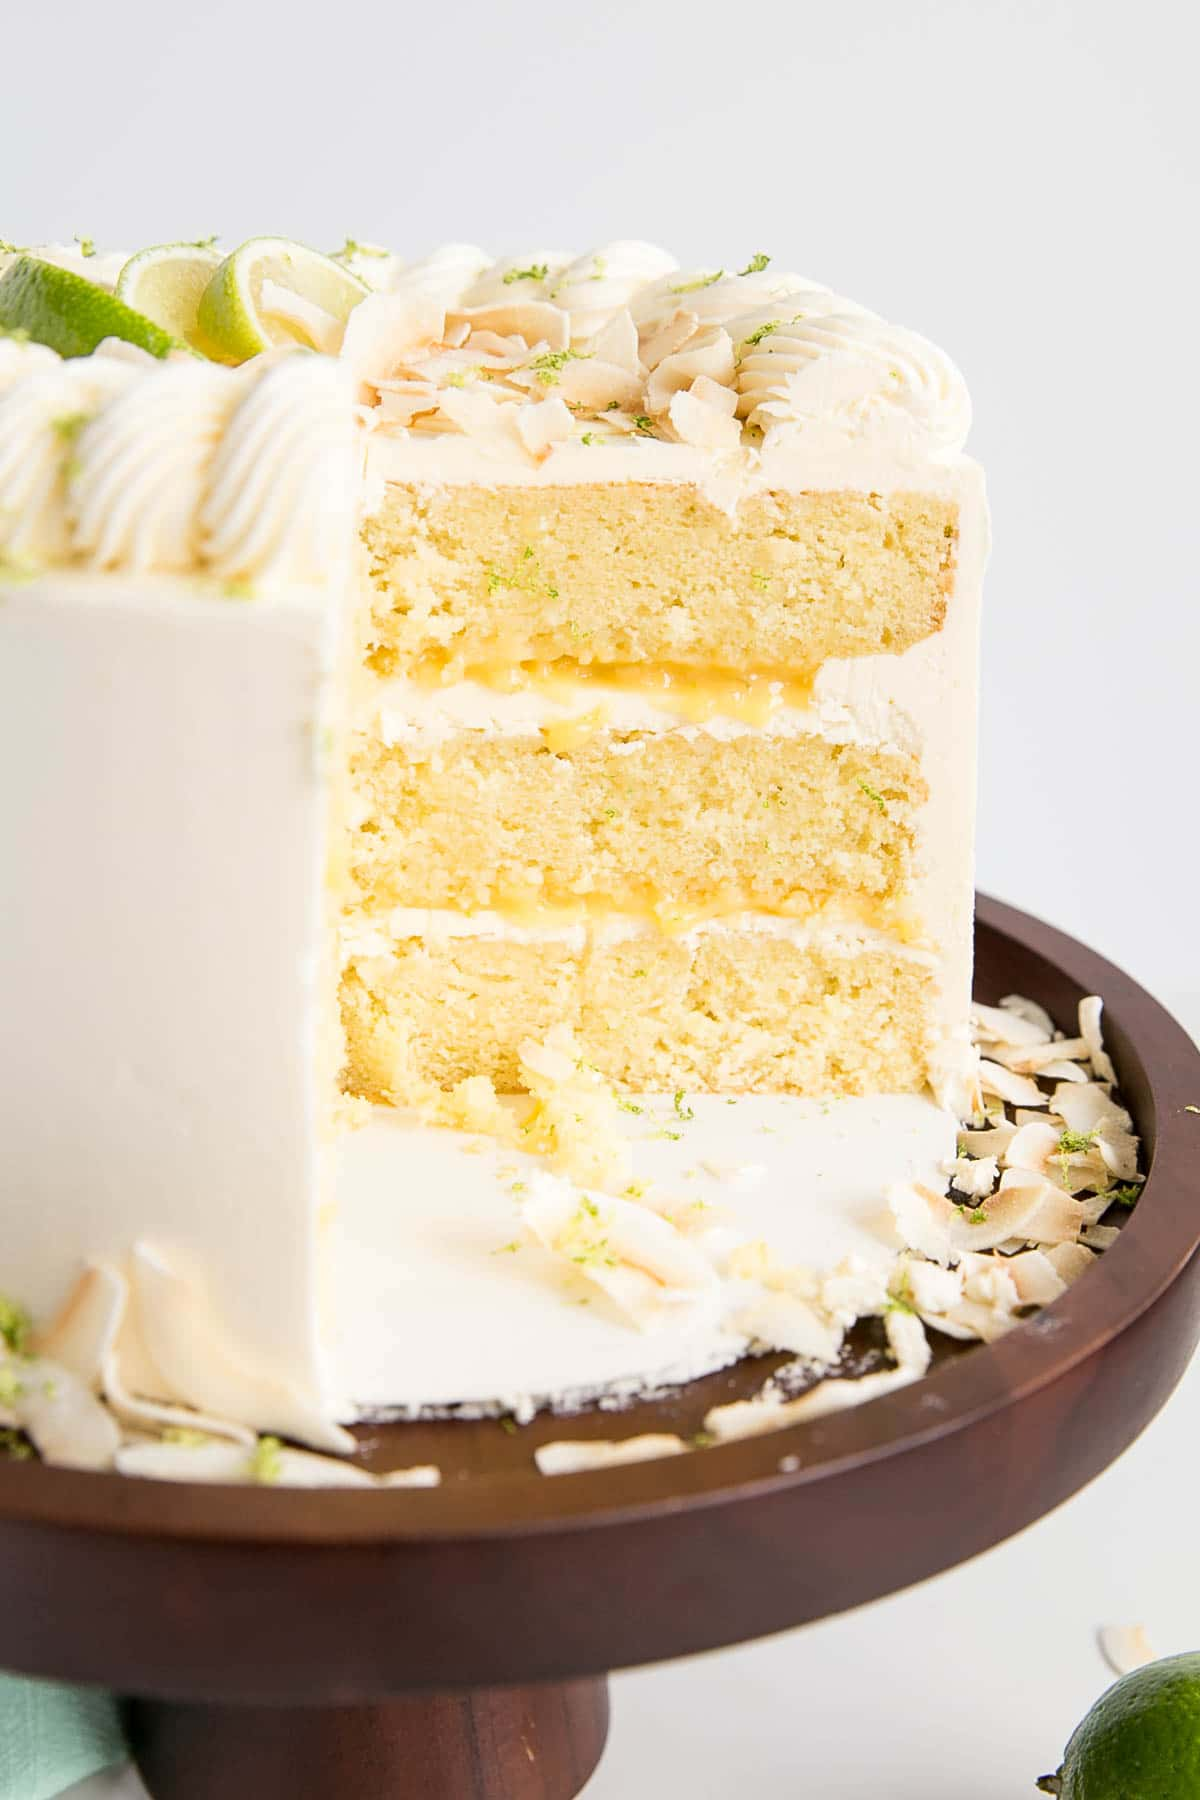 Cross section of a Lime & Coconut Cake